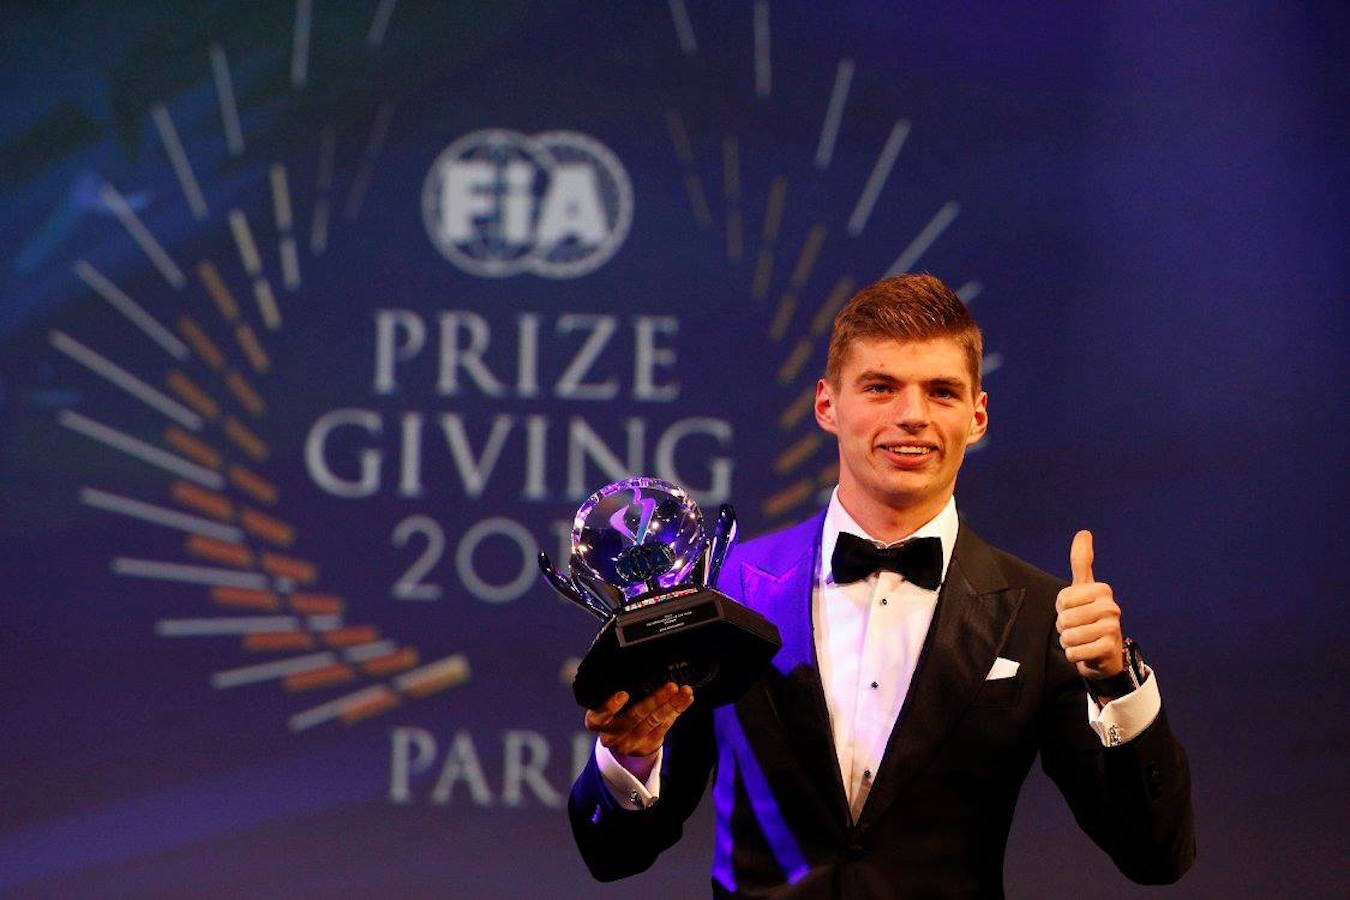 Max Verstappen wins Personality of the Year, Rookie of the Year and Action of the Year at the 2015 FIA awards.jpg